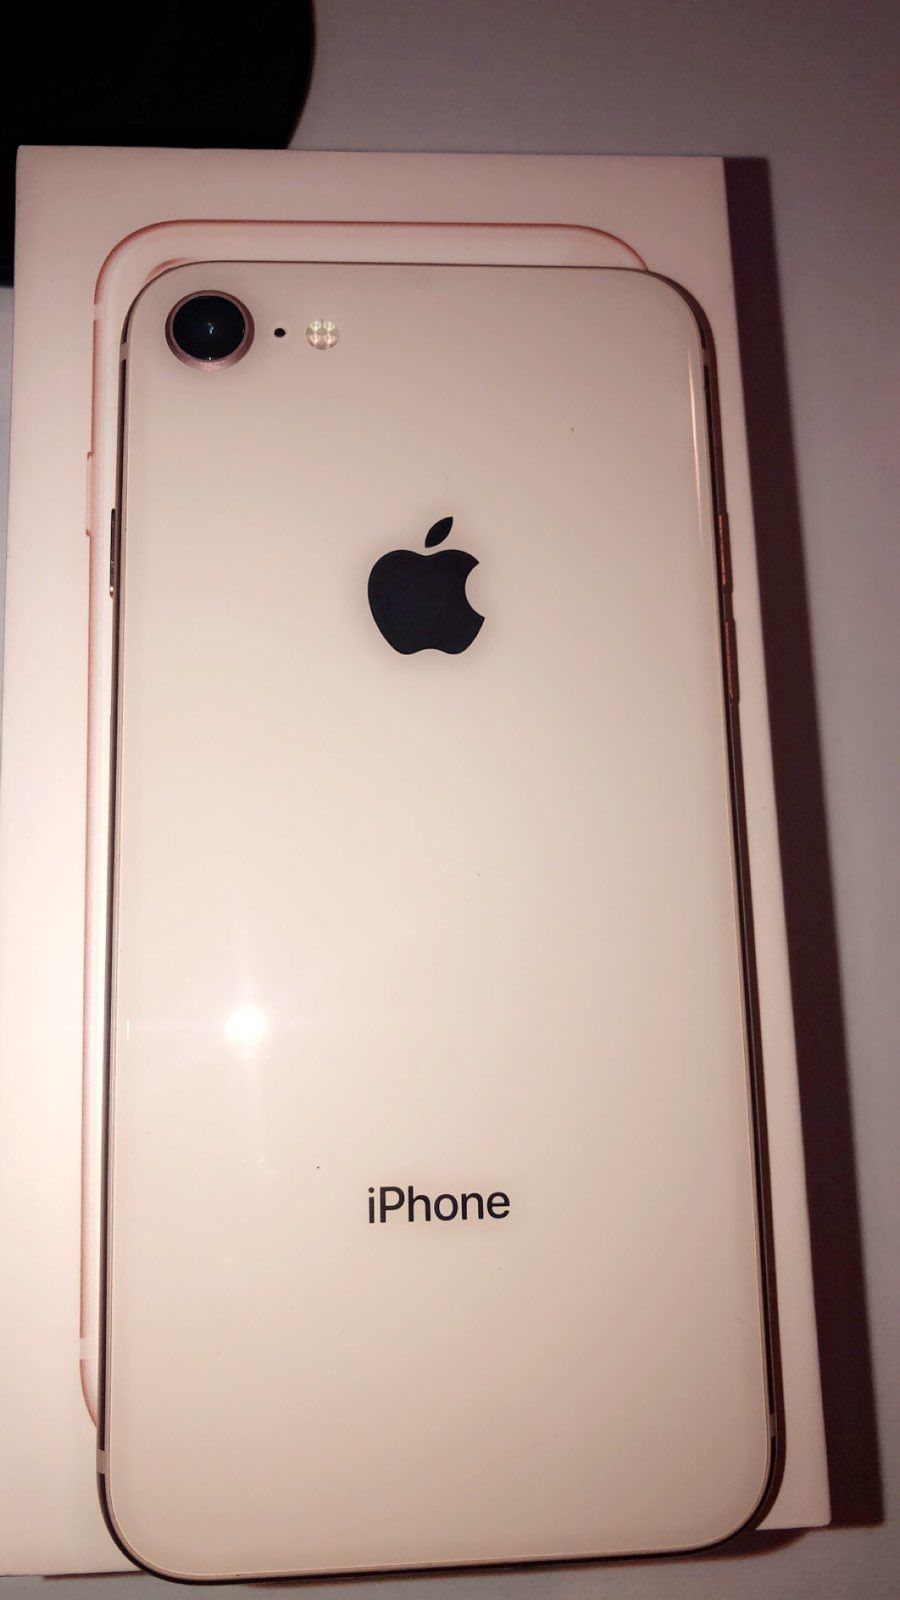 Rose Gold Iphone 8 Like New I Have Used For About Two Months Has Had A Case And Screen Protector On Since First Day Of Iphone Rose Gold Iphone Apple Smartphone